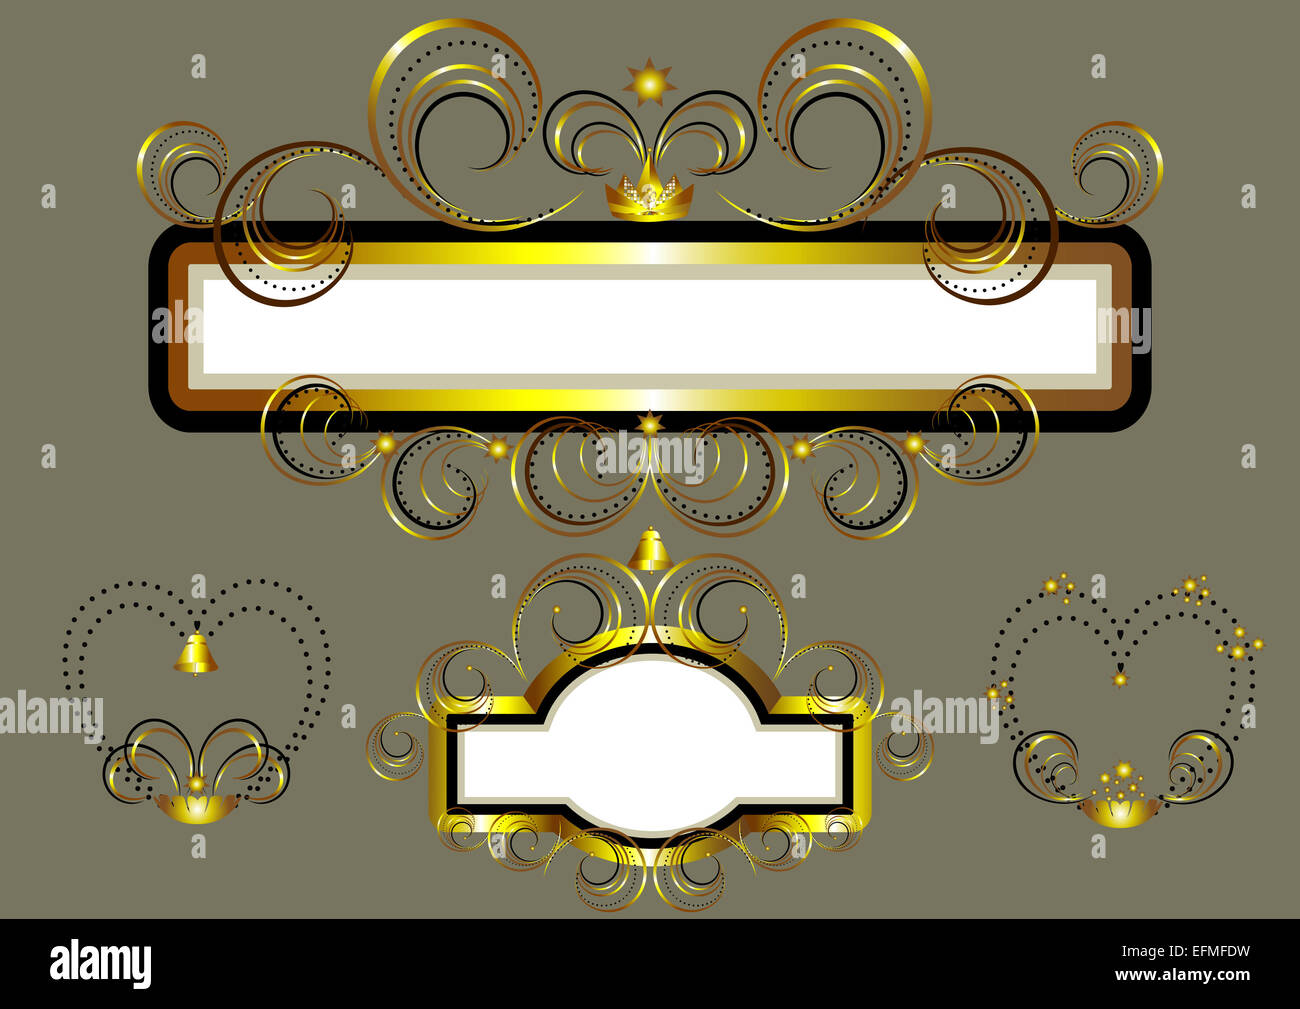 Frames with gold stars and swirls. - Stock Image